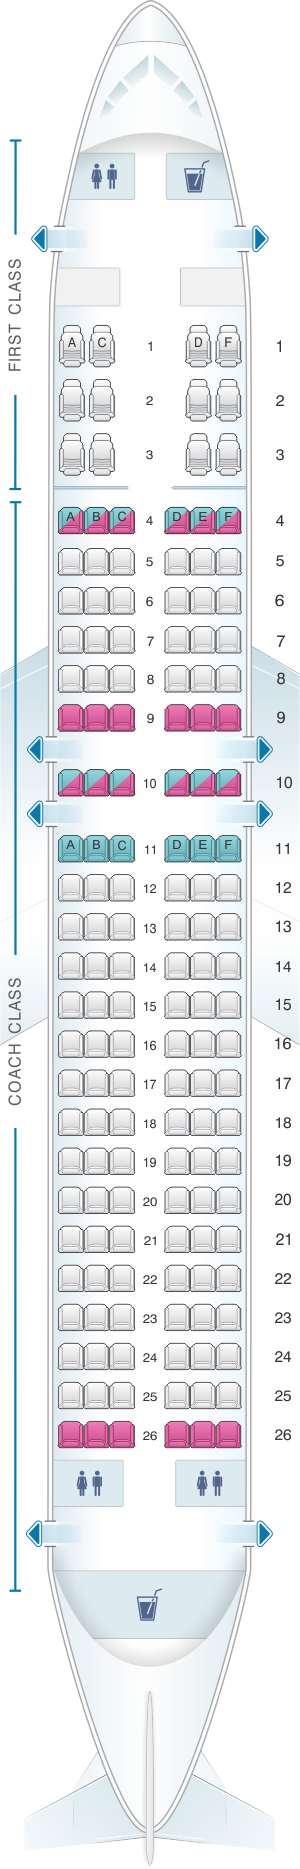 Seat map for US Airways Airbus A320